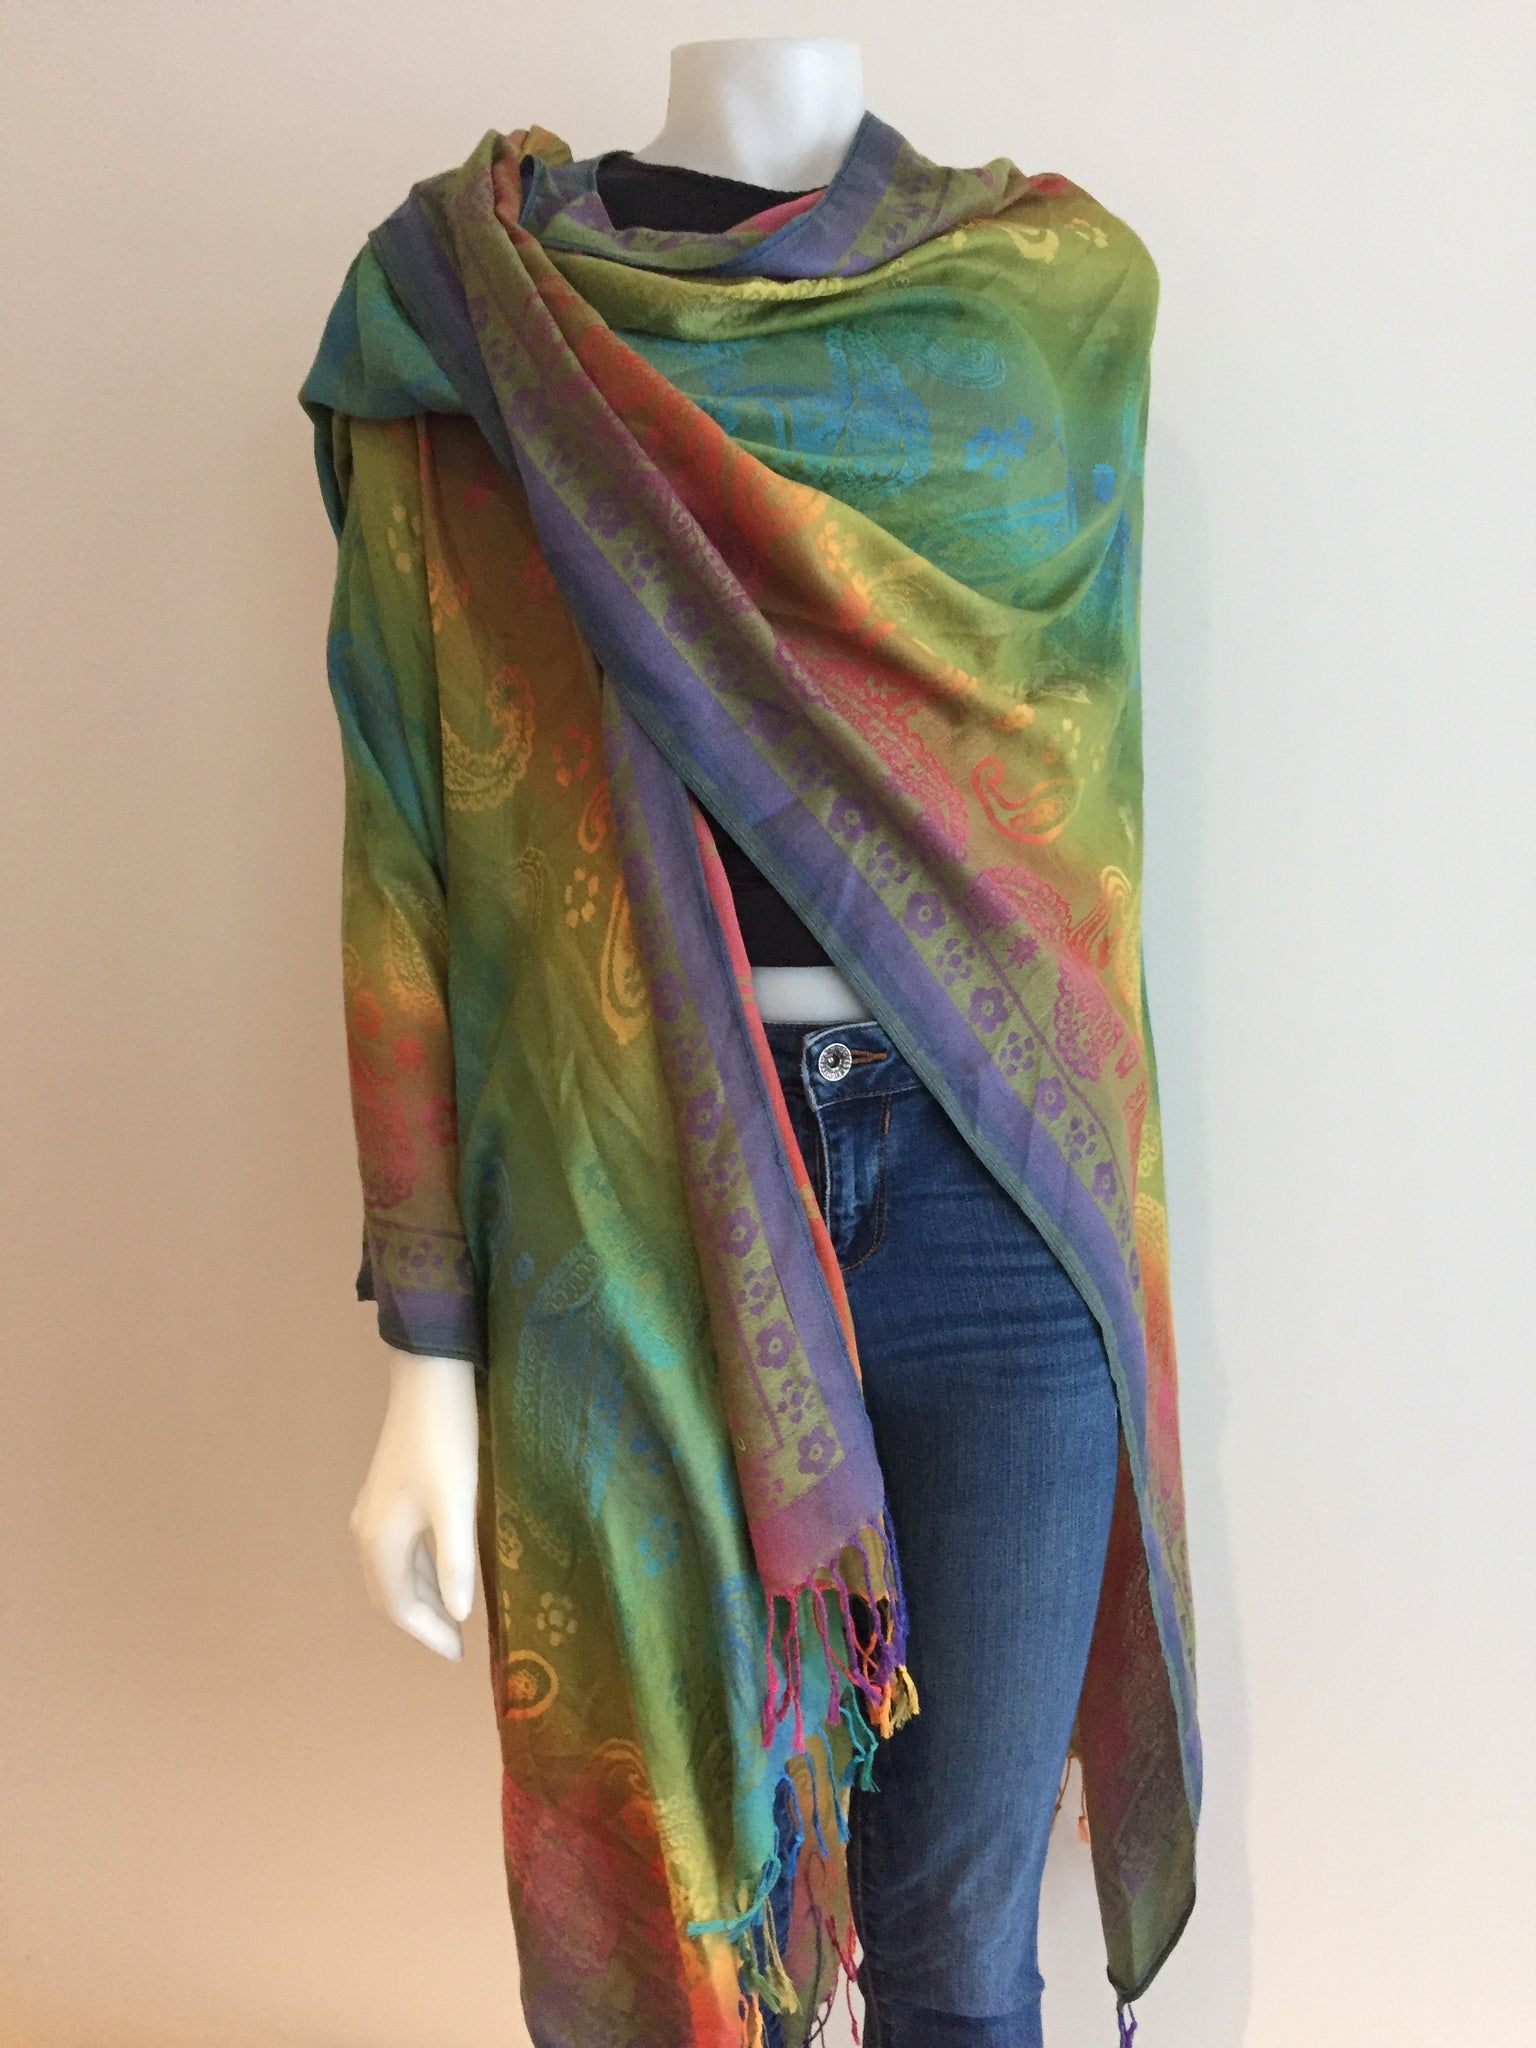 GREEN RAINBOW SHAWL with Flowers